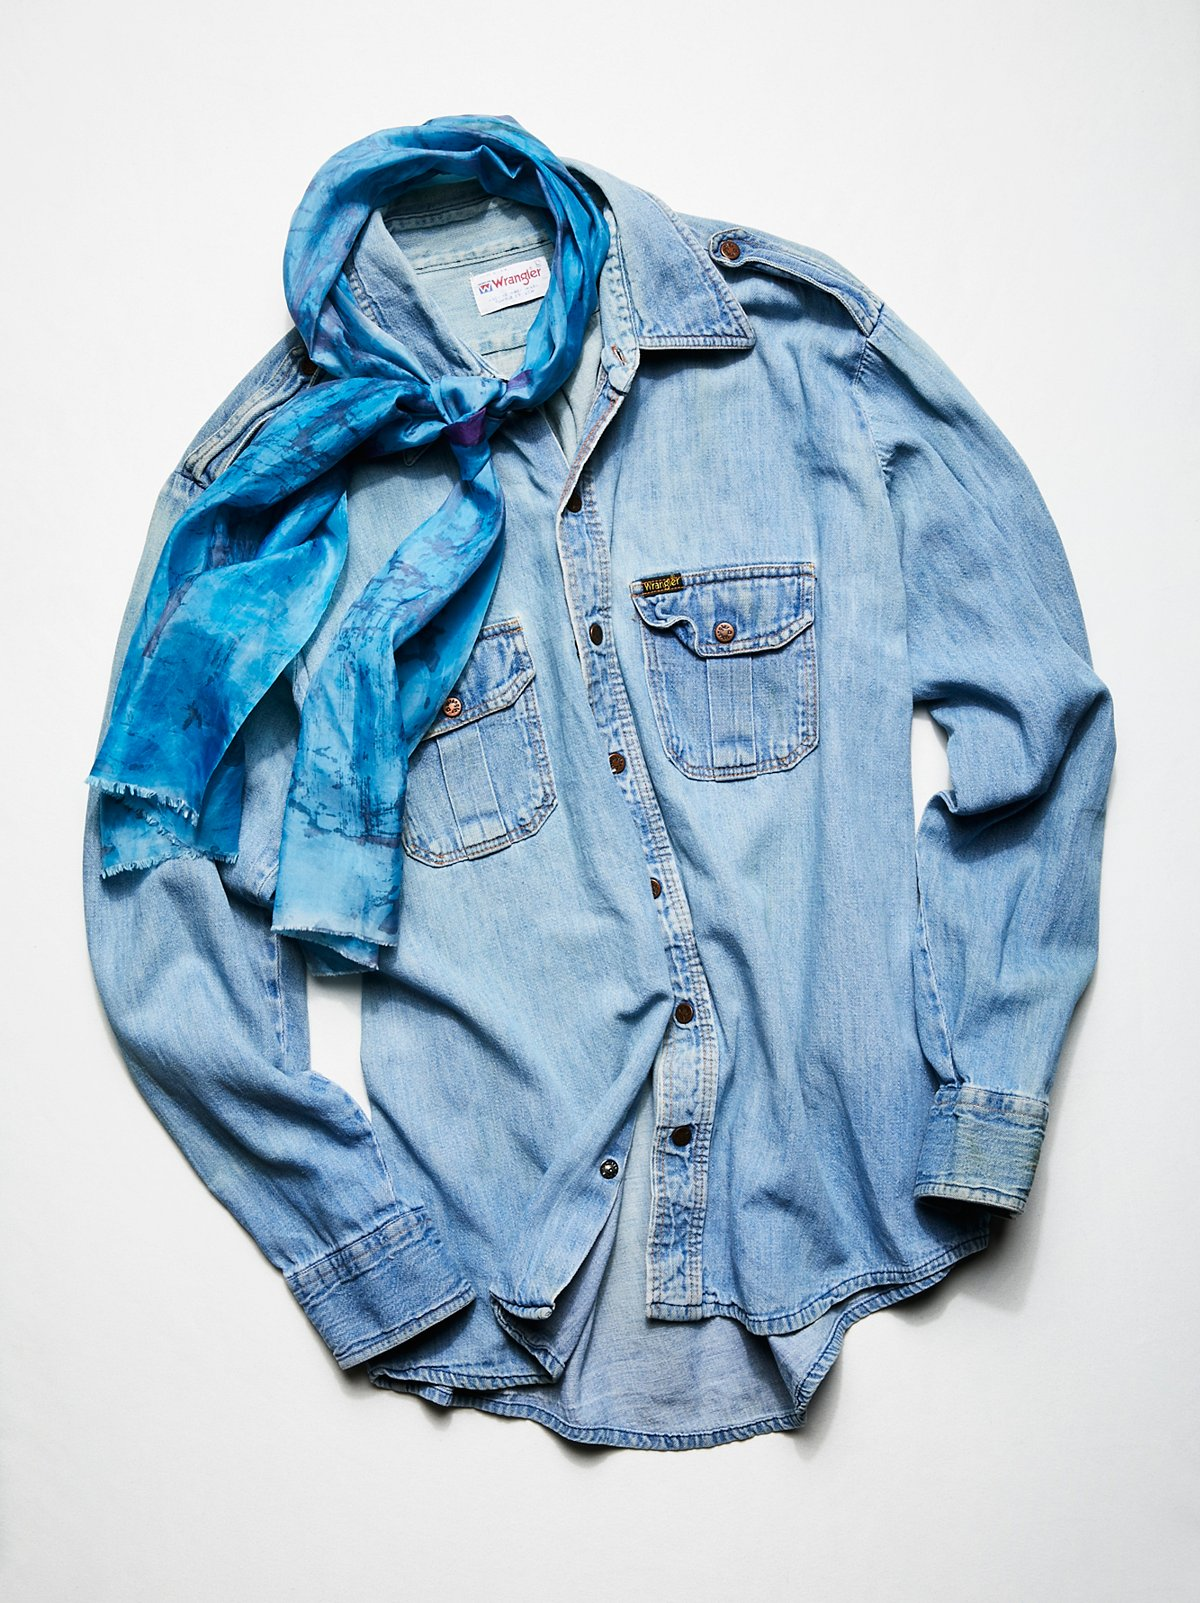 Vintage 1970s Denim Shirt